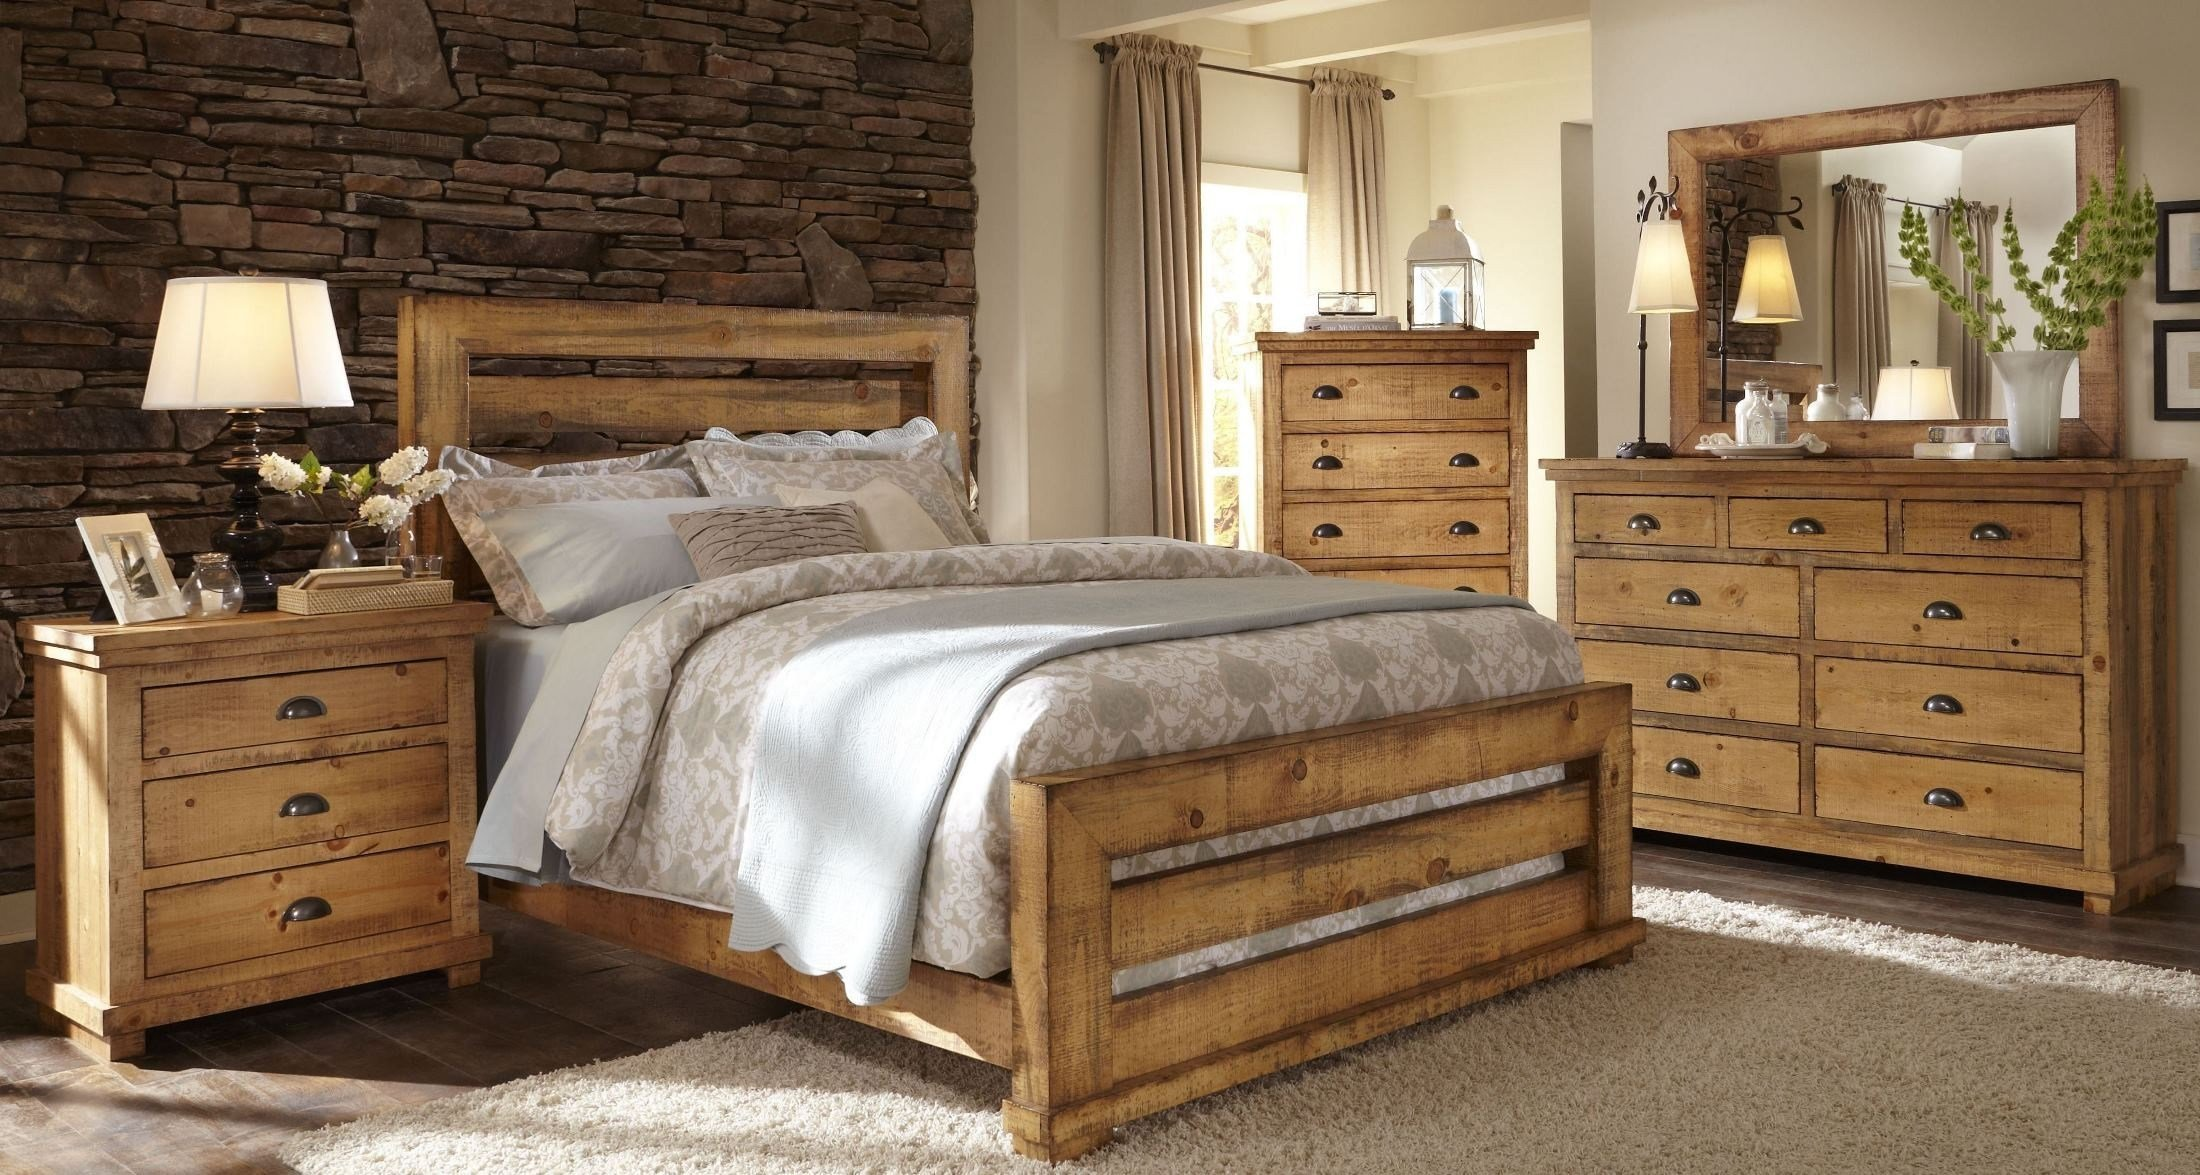 Best Willow Distressed Pine Slat Bedroom Set From Progressive With Pictures